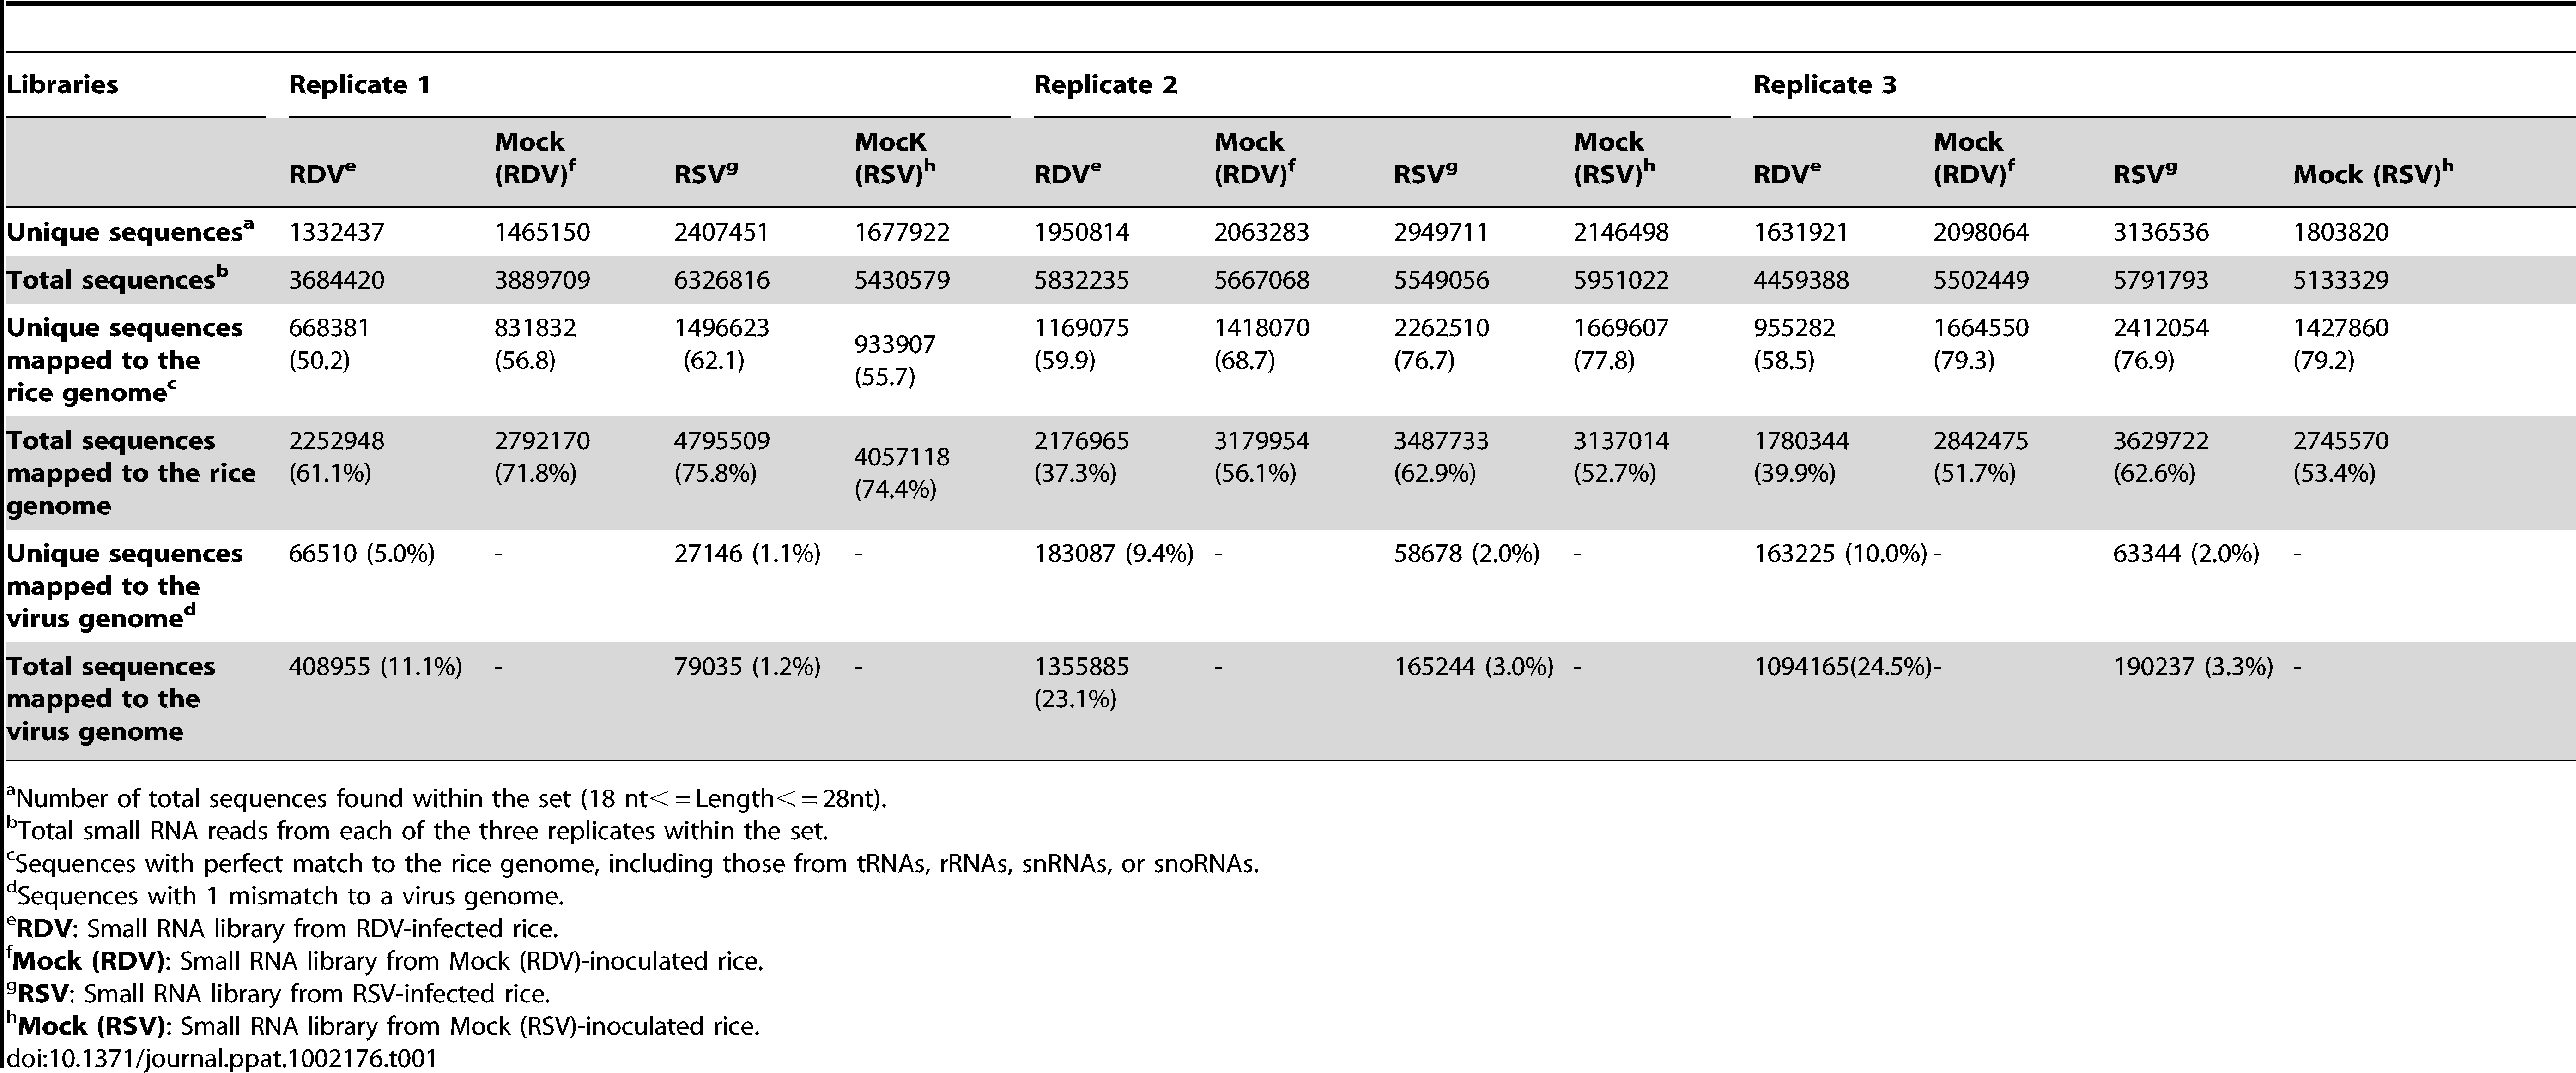 Summary of deep sequencing results of small RNAs from virus-infected and mock-inoculated rice small RNA libraries.